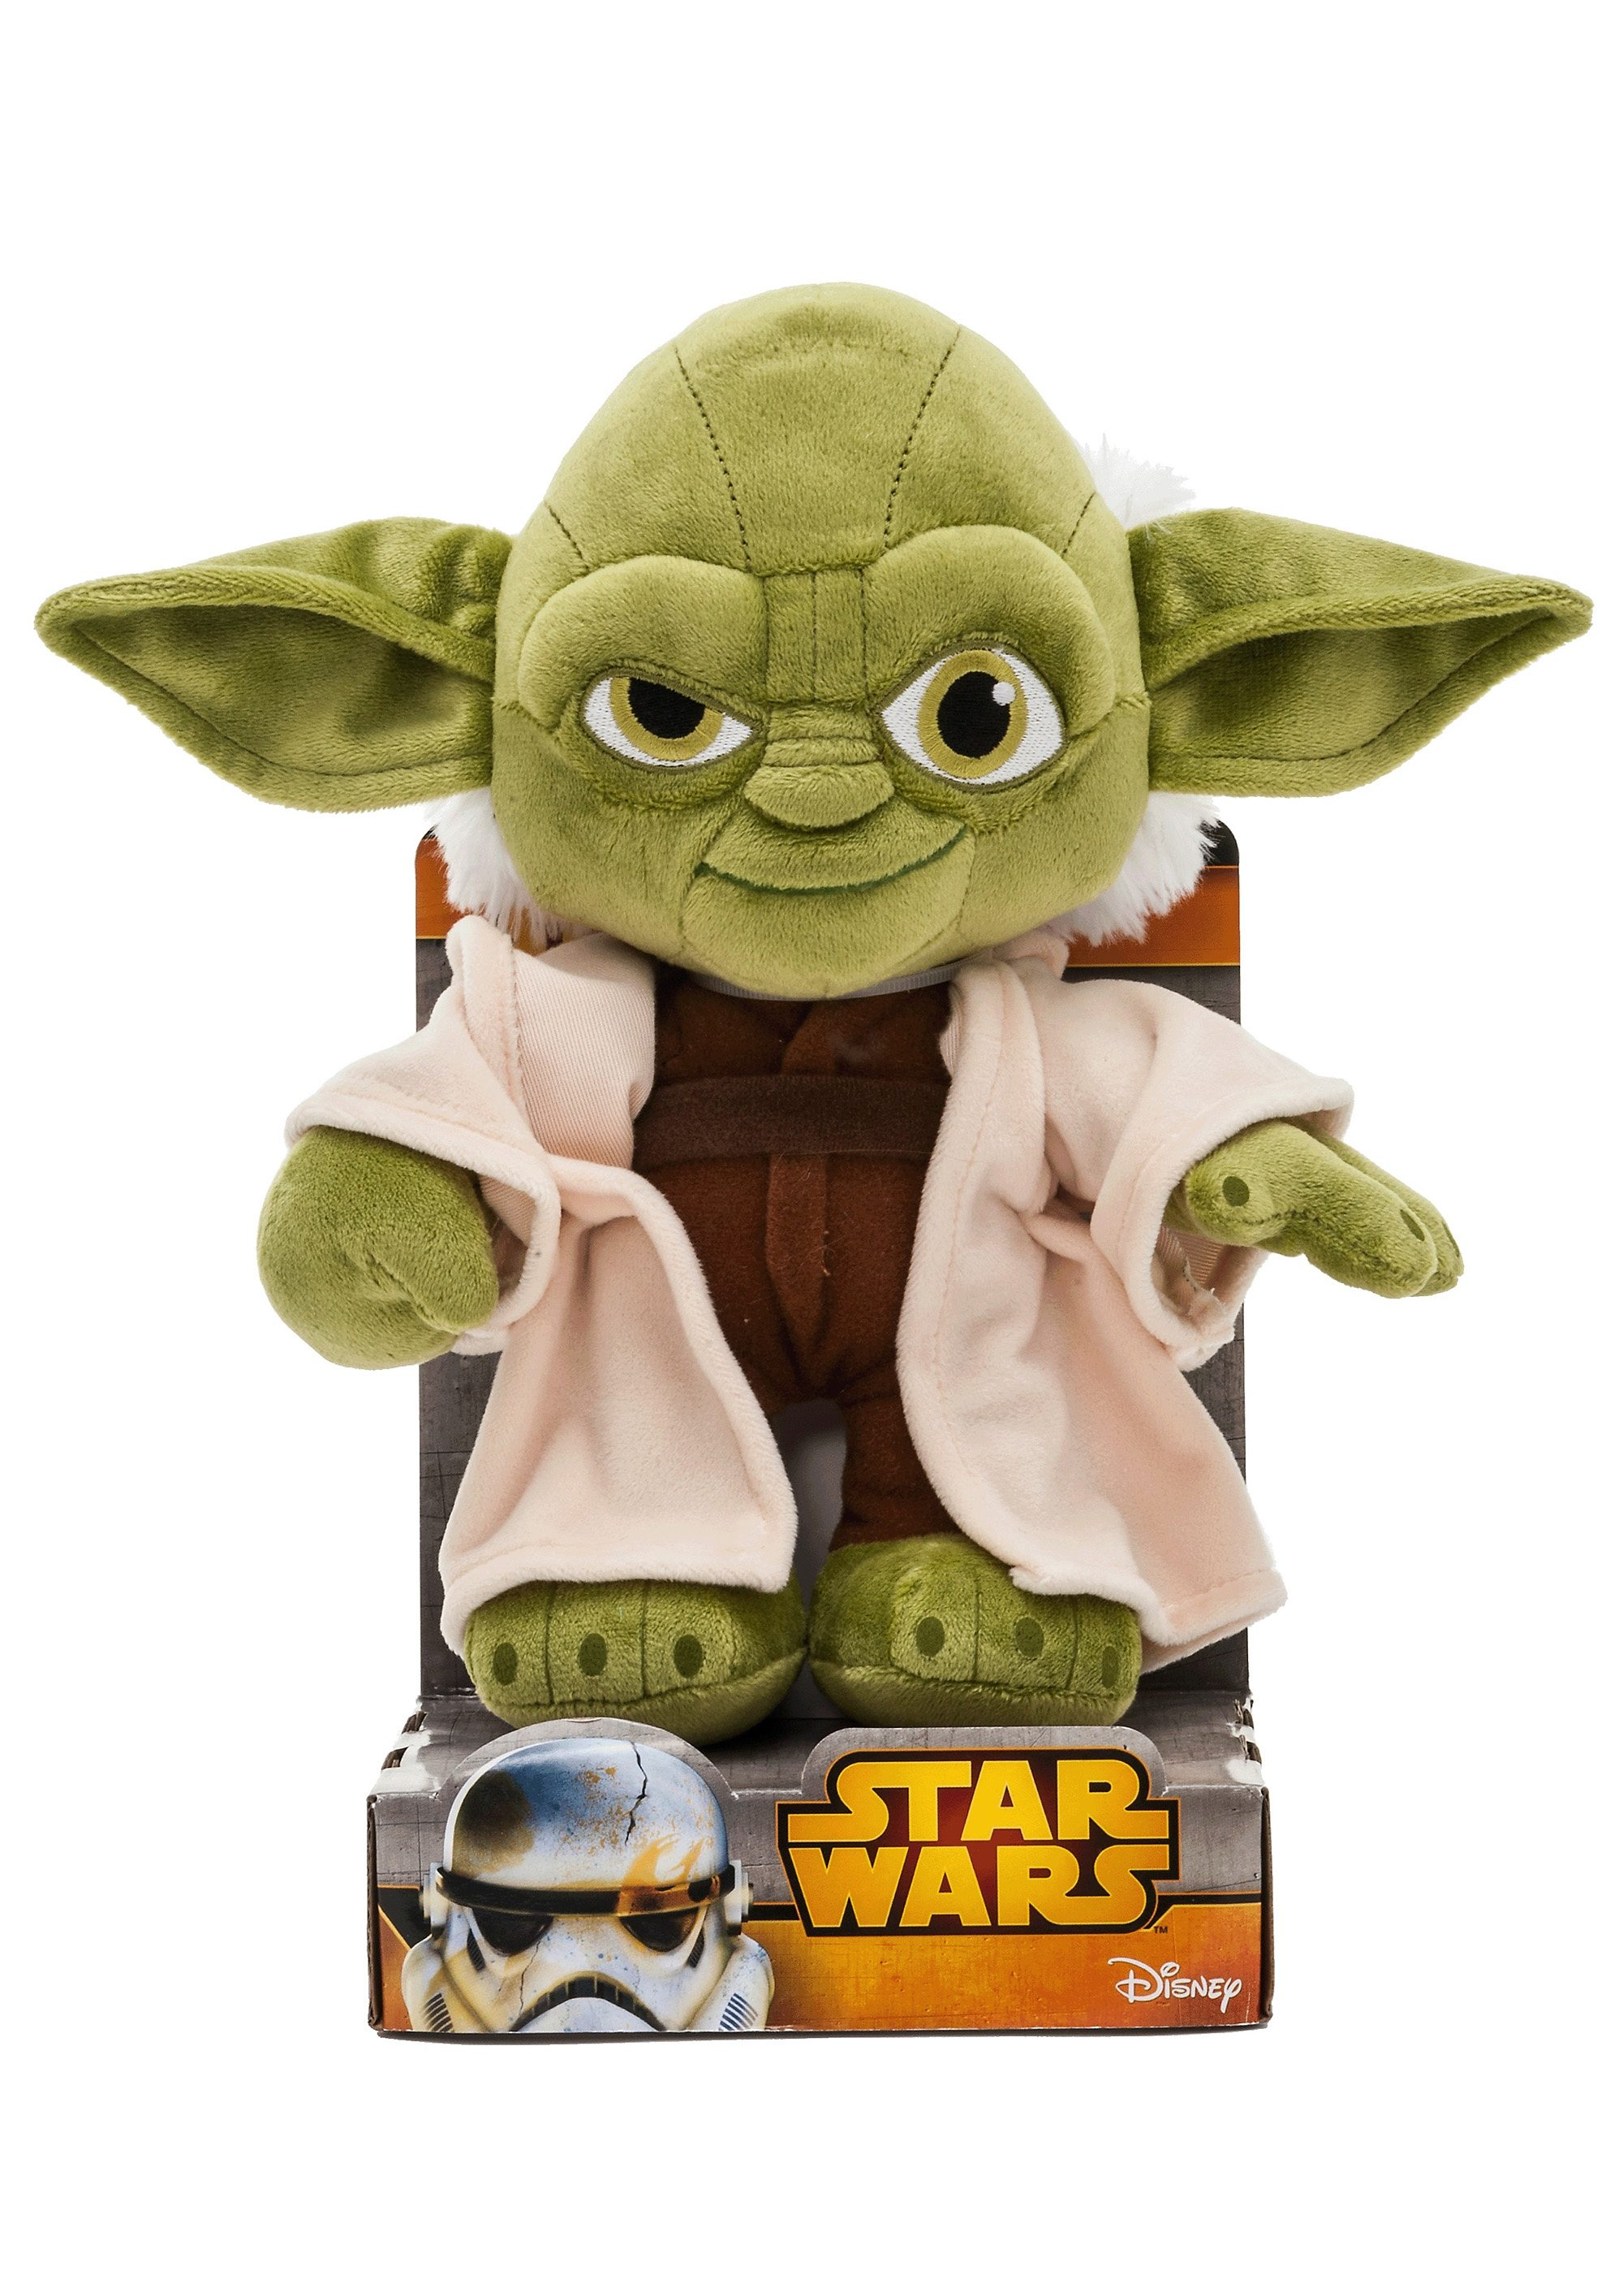 JOY TOY Plüschfigur, »Star Wars Yoda«